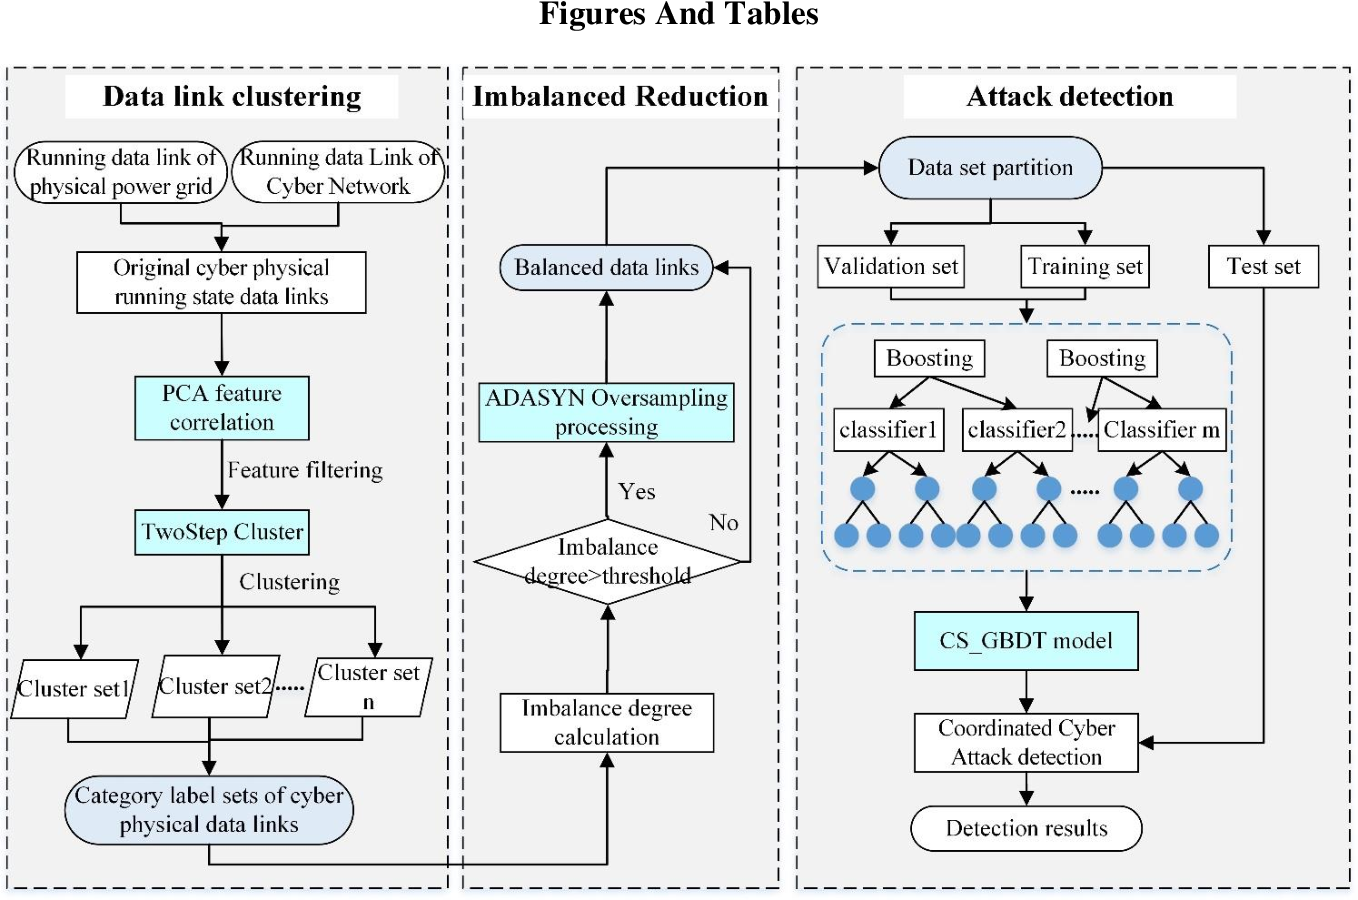 Figure 1 for Coordinated Cyber-Attack Detection Model of Cyber-Physical Power System Based on the Operating State Data Link